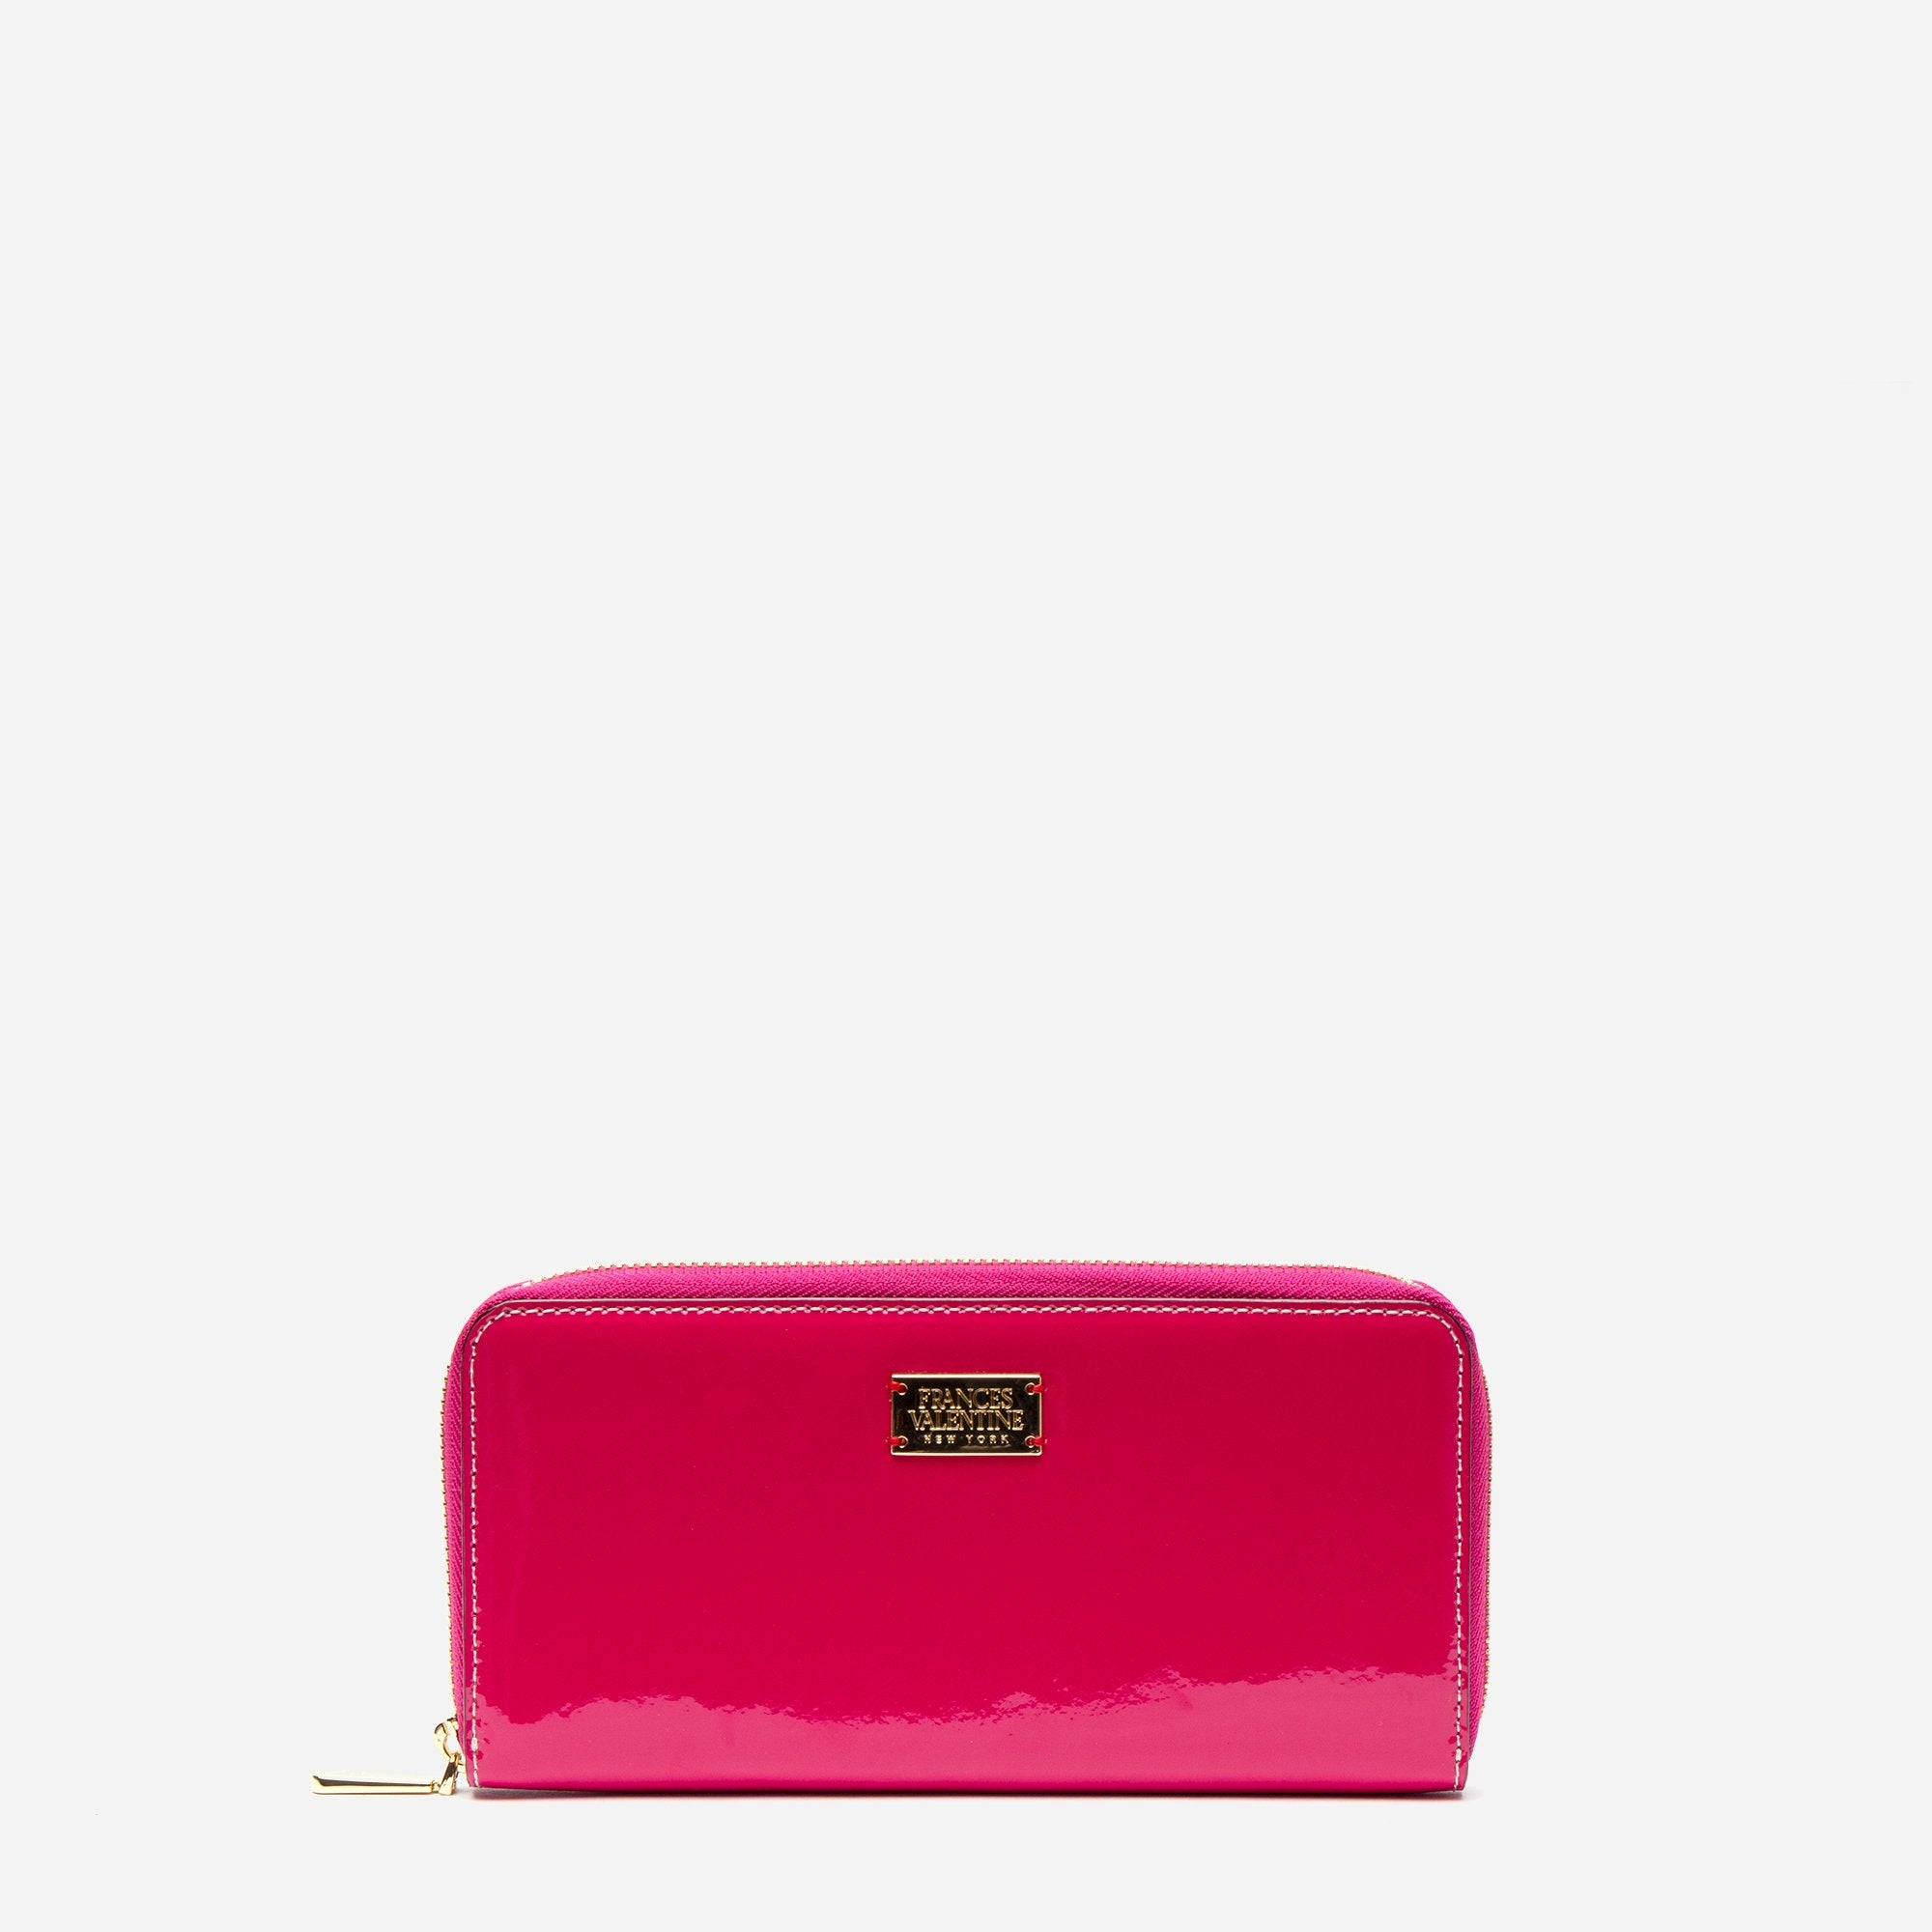 Washington Zip Wallet Soft Patent Pink Oyster